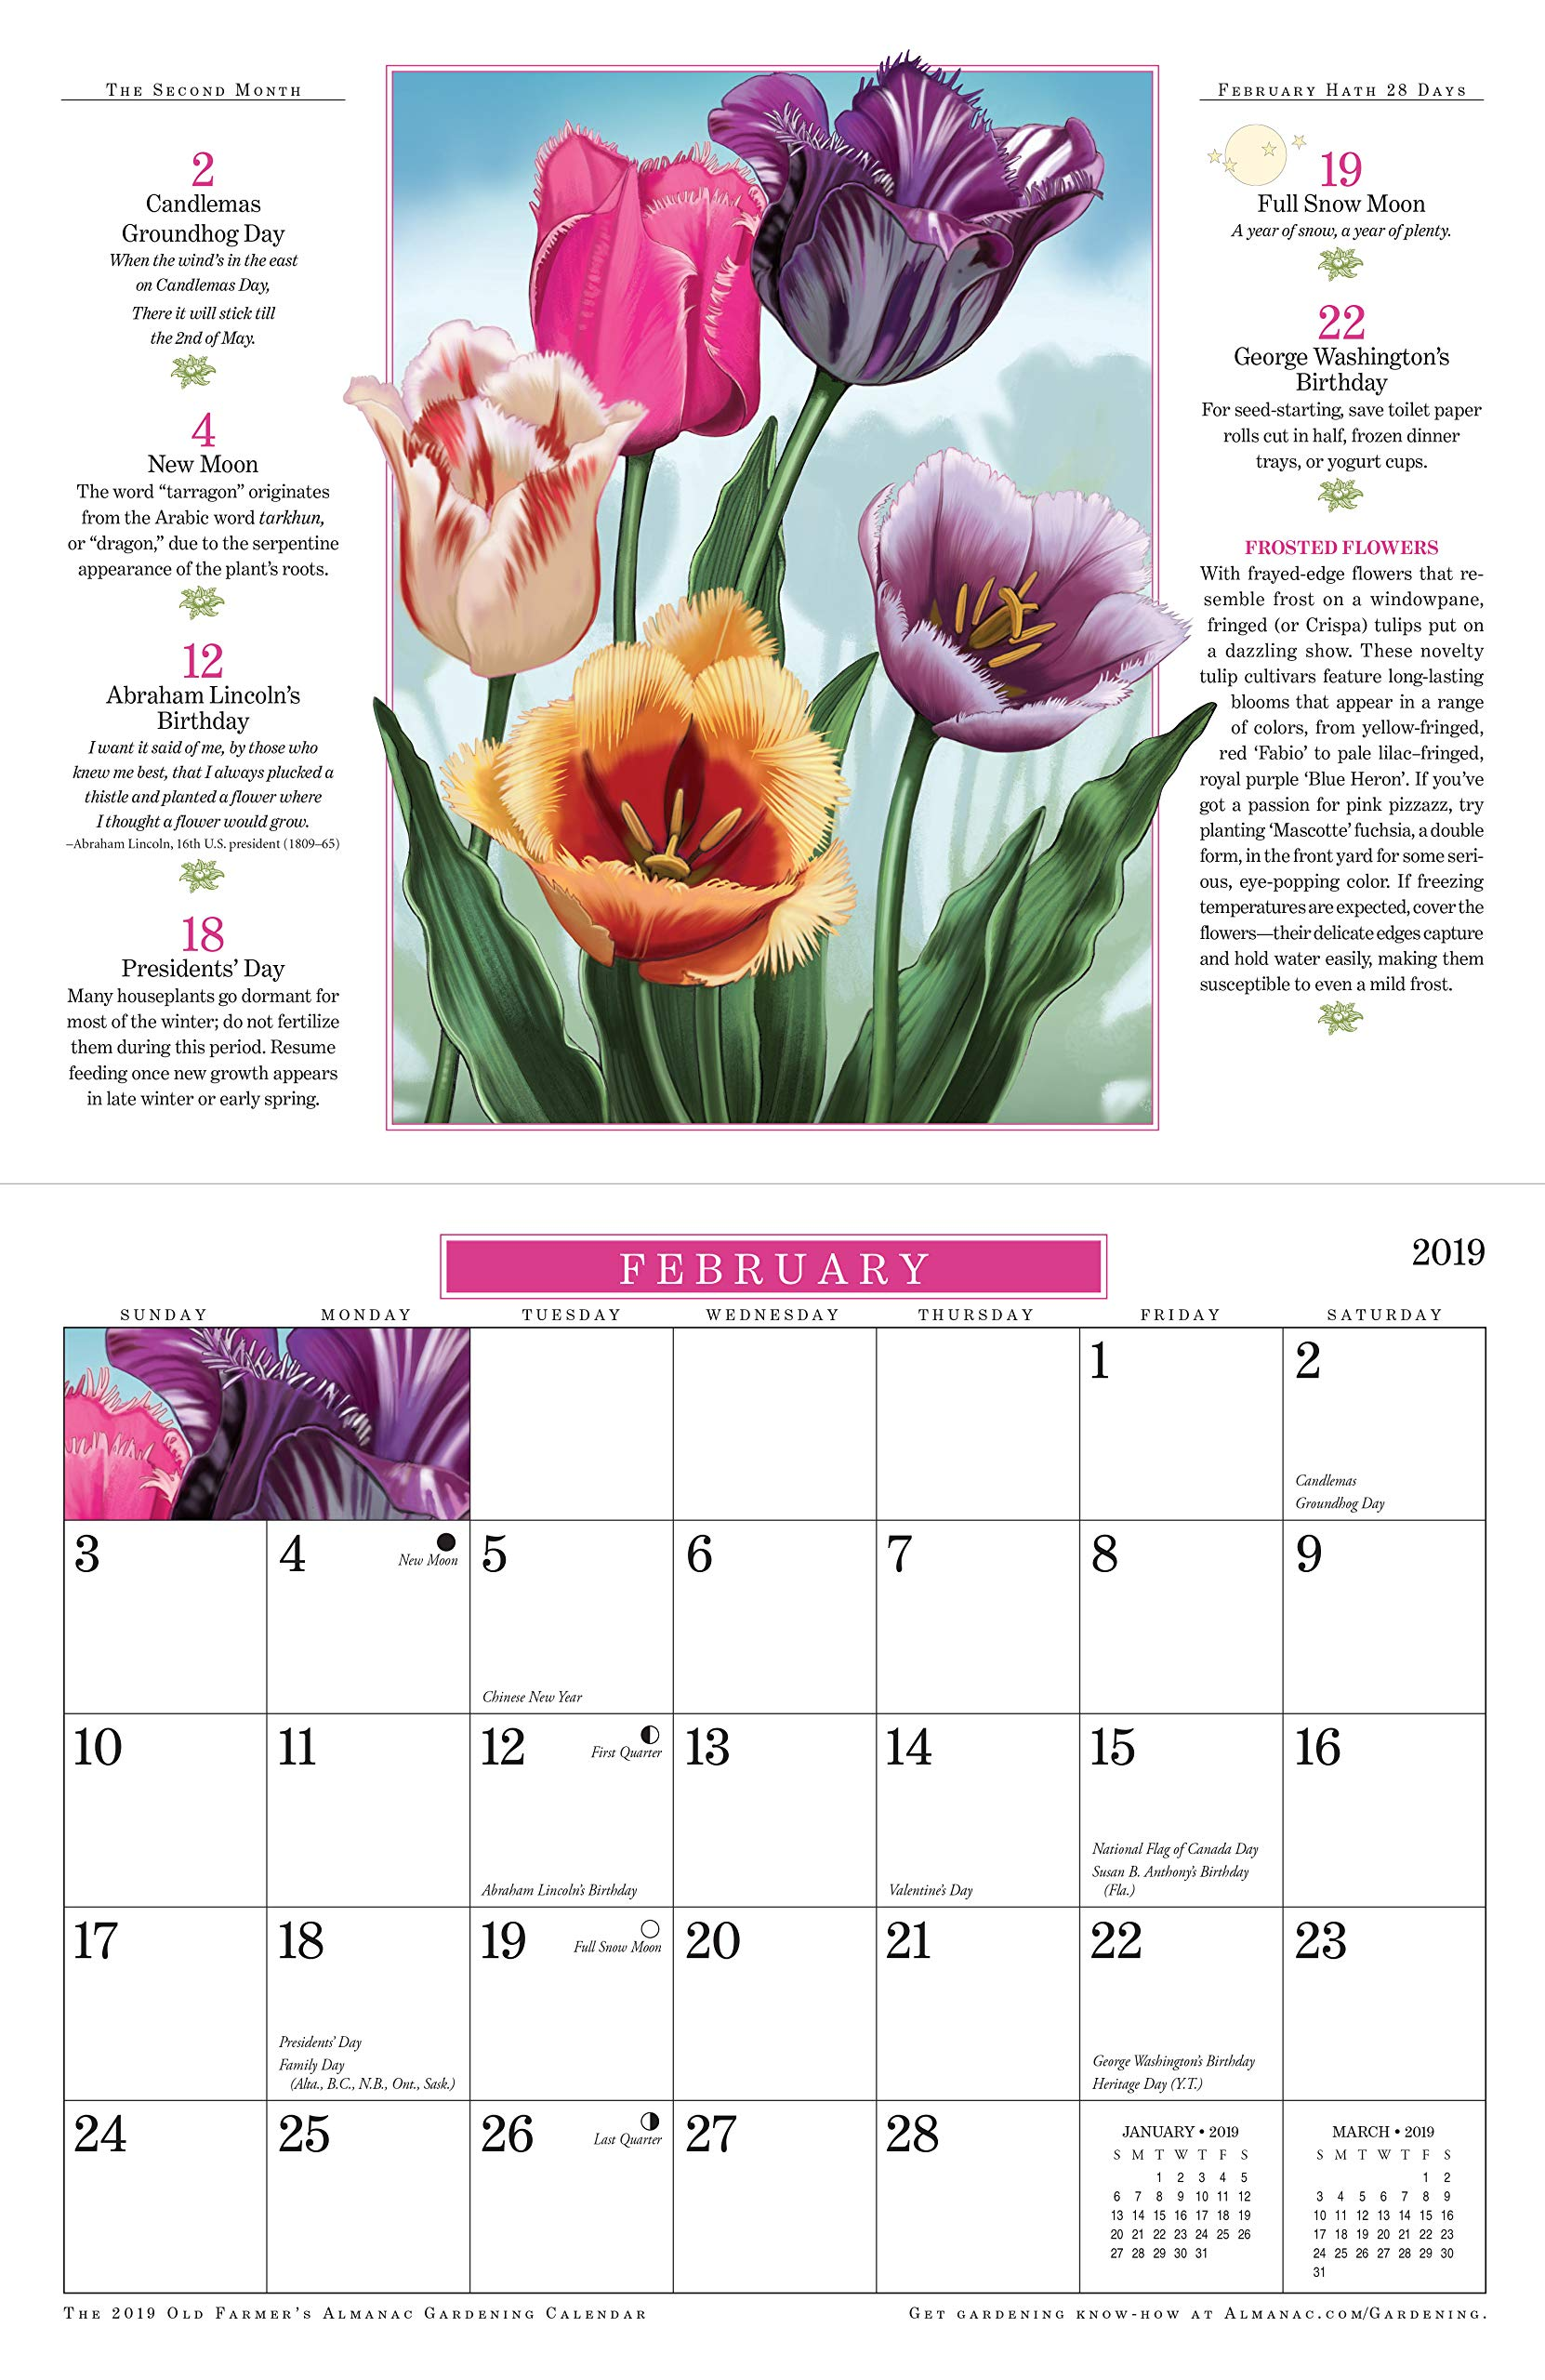 farmers almanac best days to plant